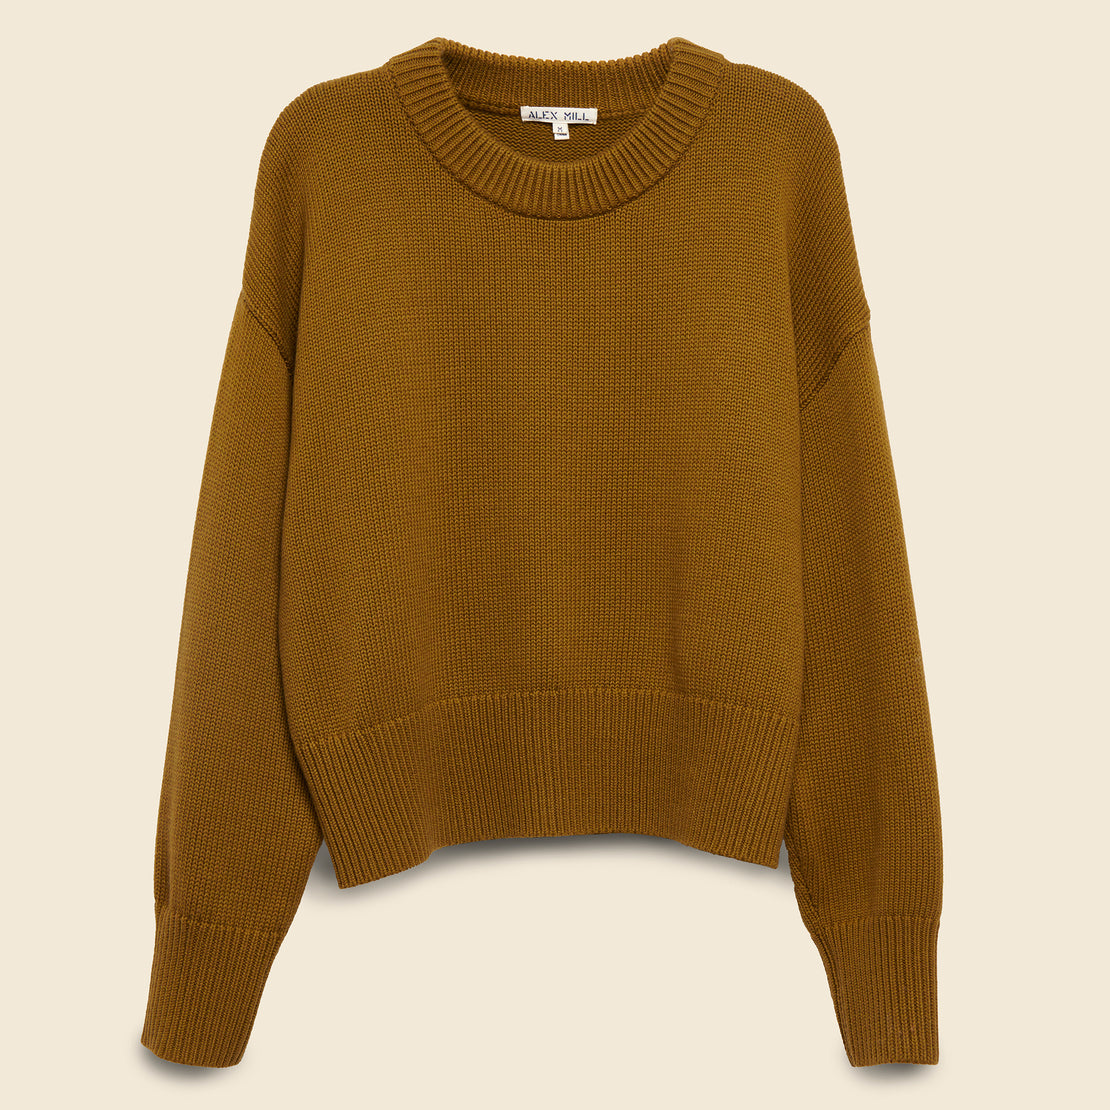 Alex Mill Cozy Crewneck Sweater - Mustard